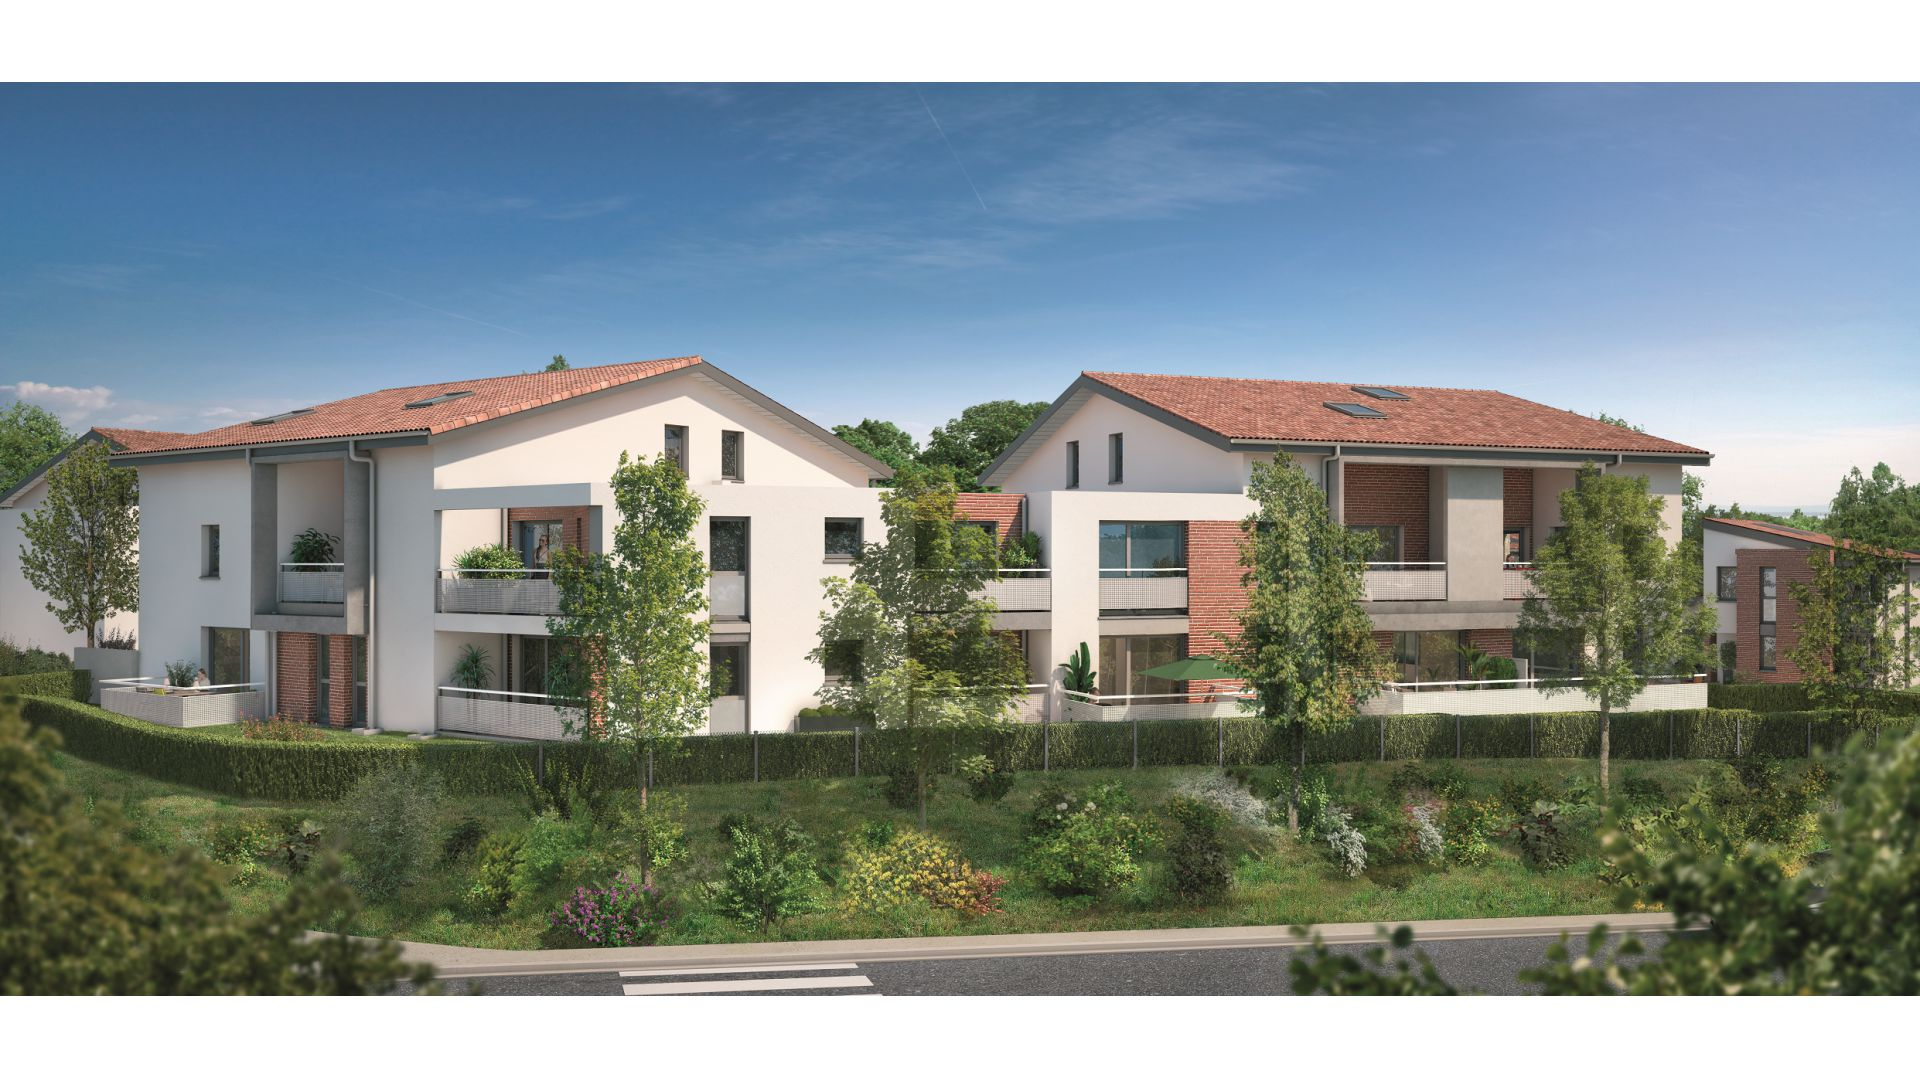 Greencity Immobilier - Villas Valéria - 31320 Auzeville - Villas neuves T6 - appartements neufs T2-T3 - collectif